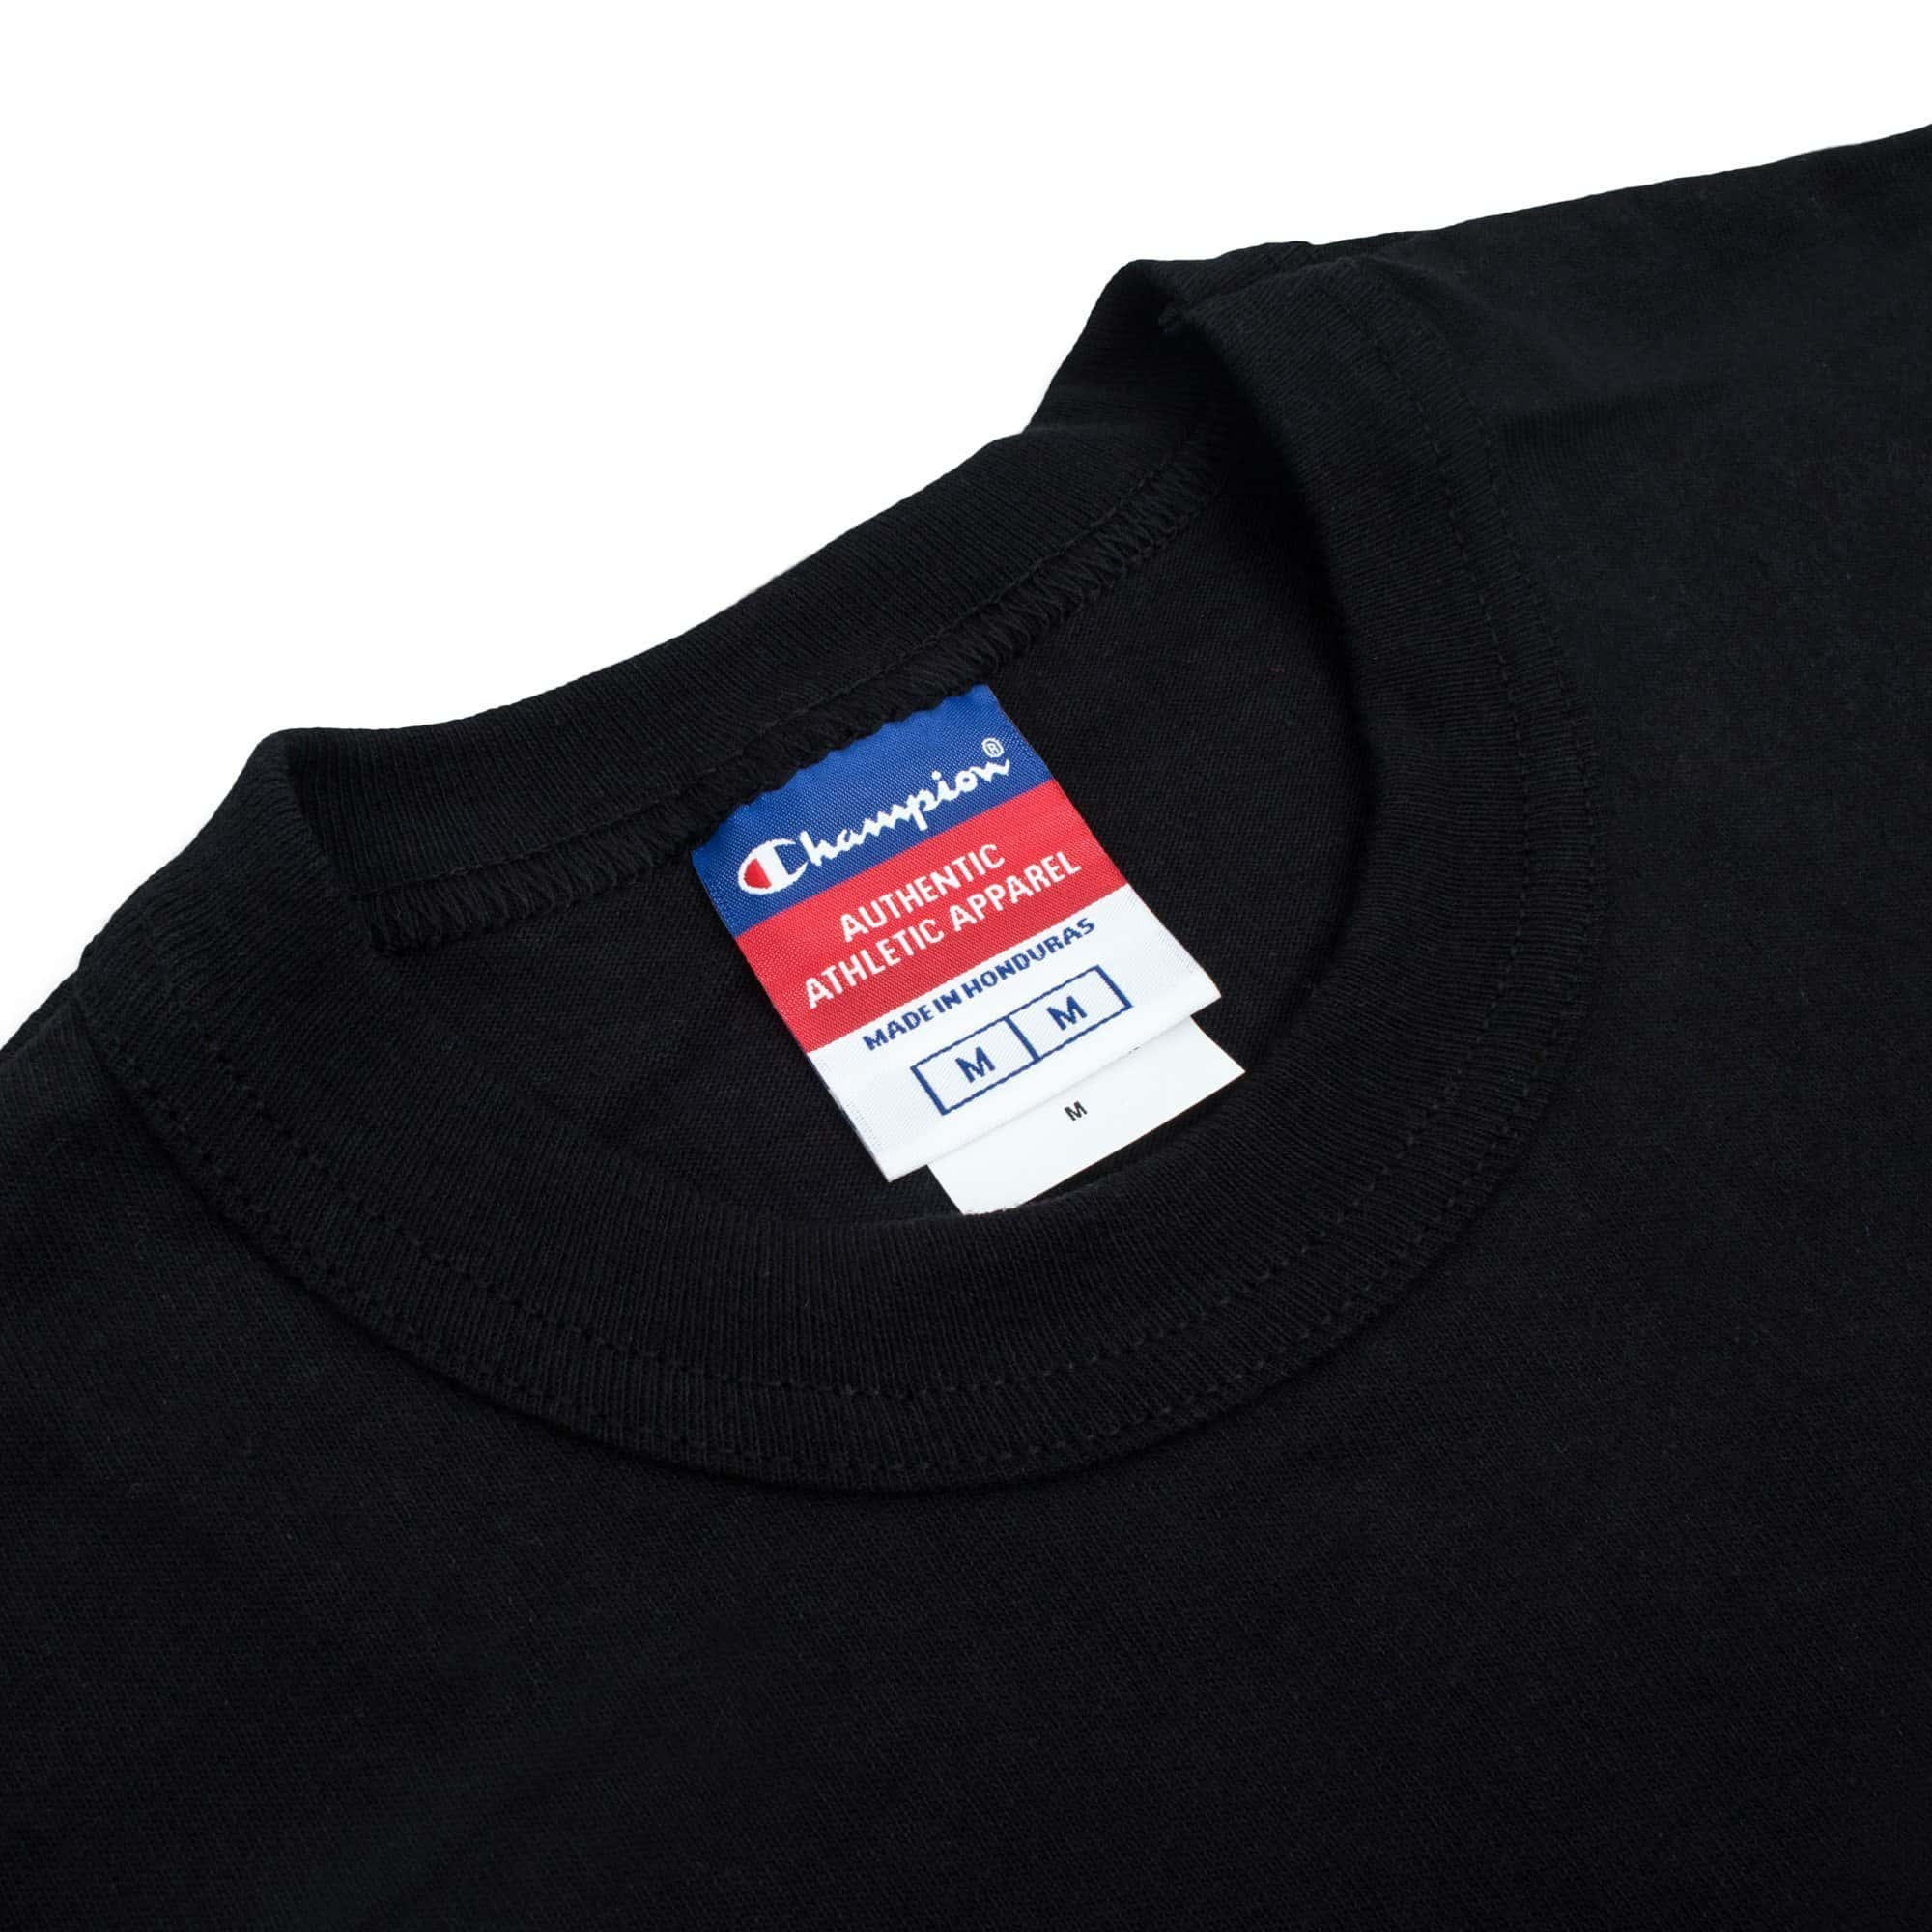 116 x Champion 'Romans 1:16' T-Shirt - Black